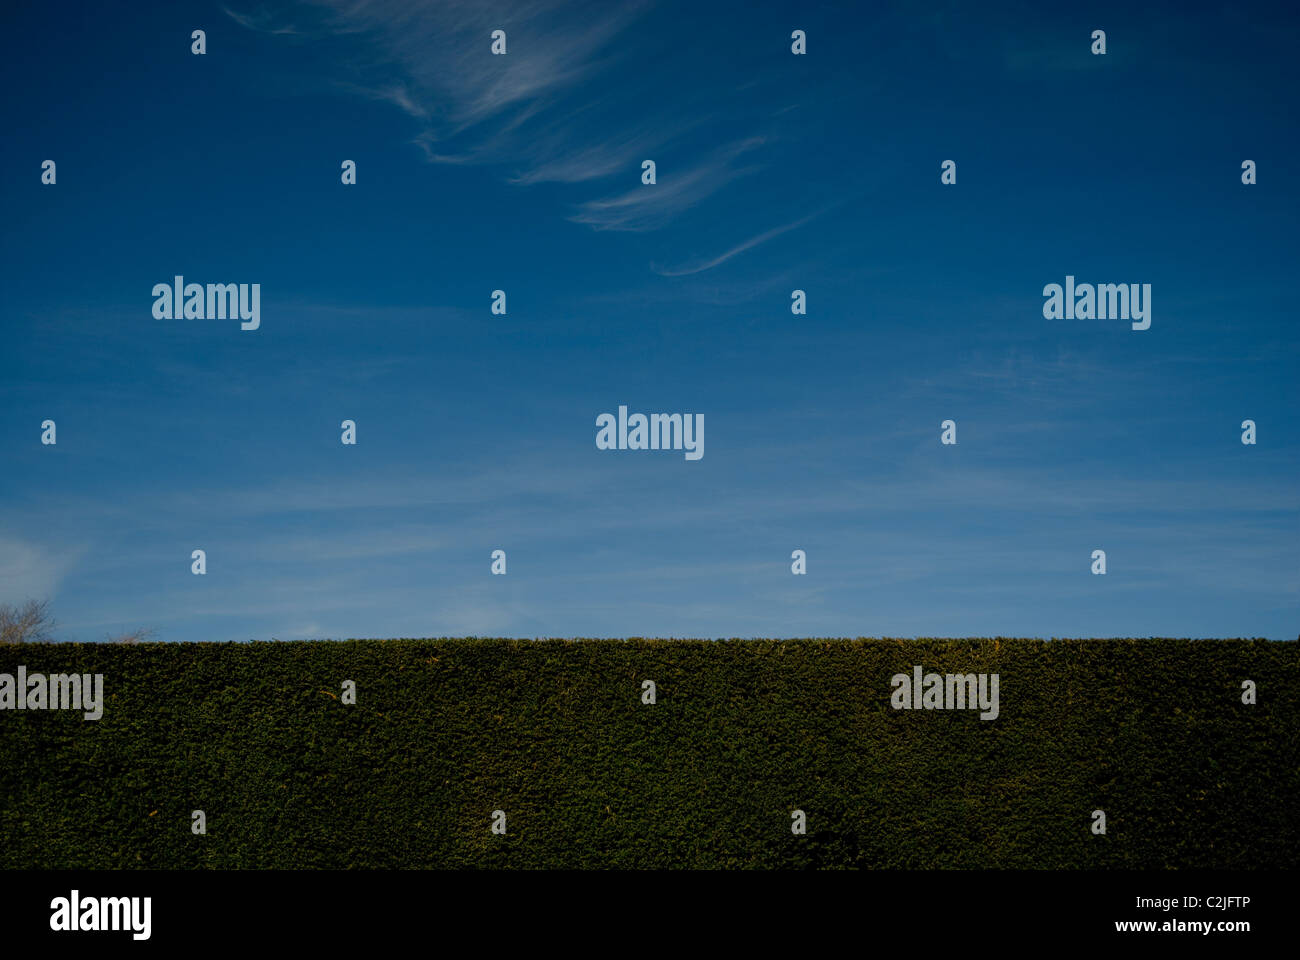 Hedge, blue sky and wispy clouds with space for text - Stock Image